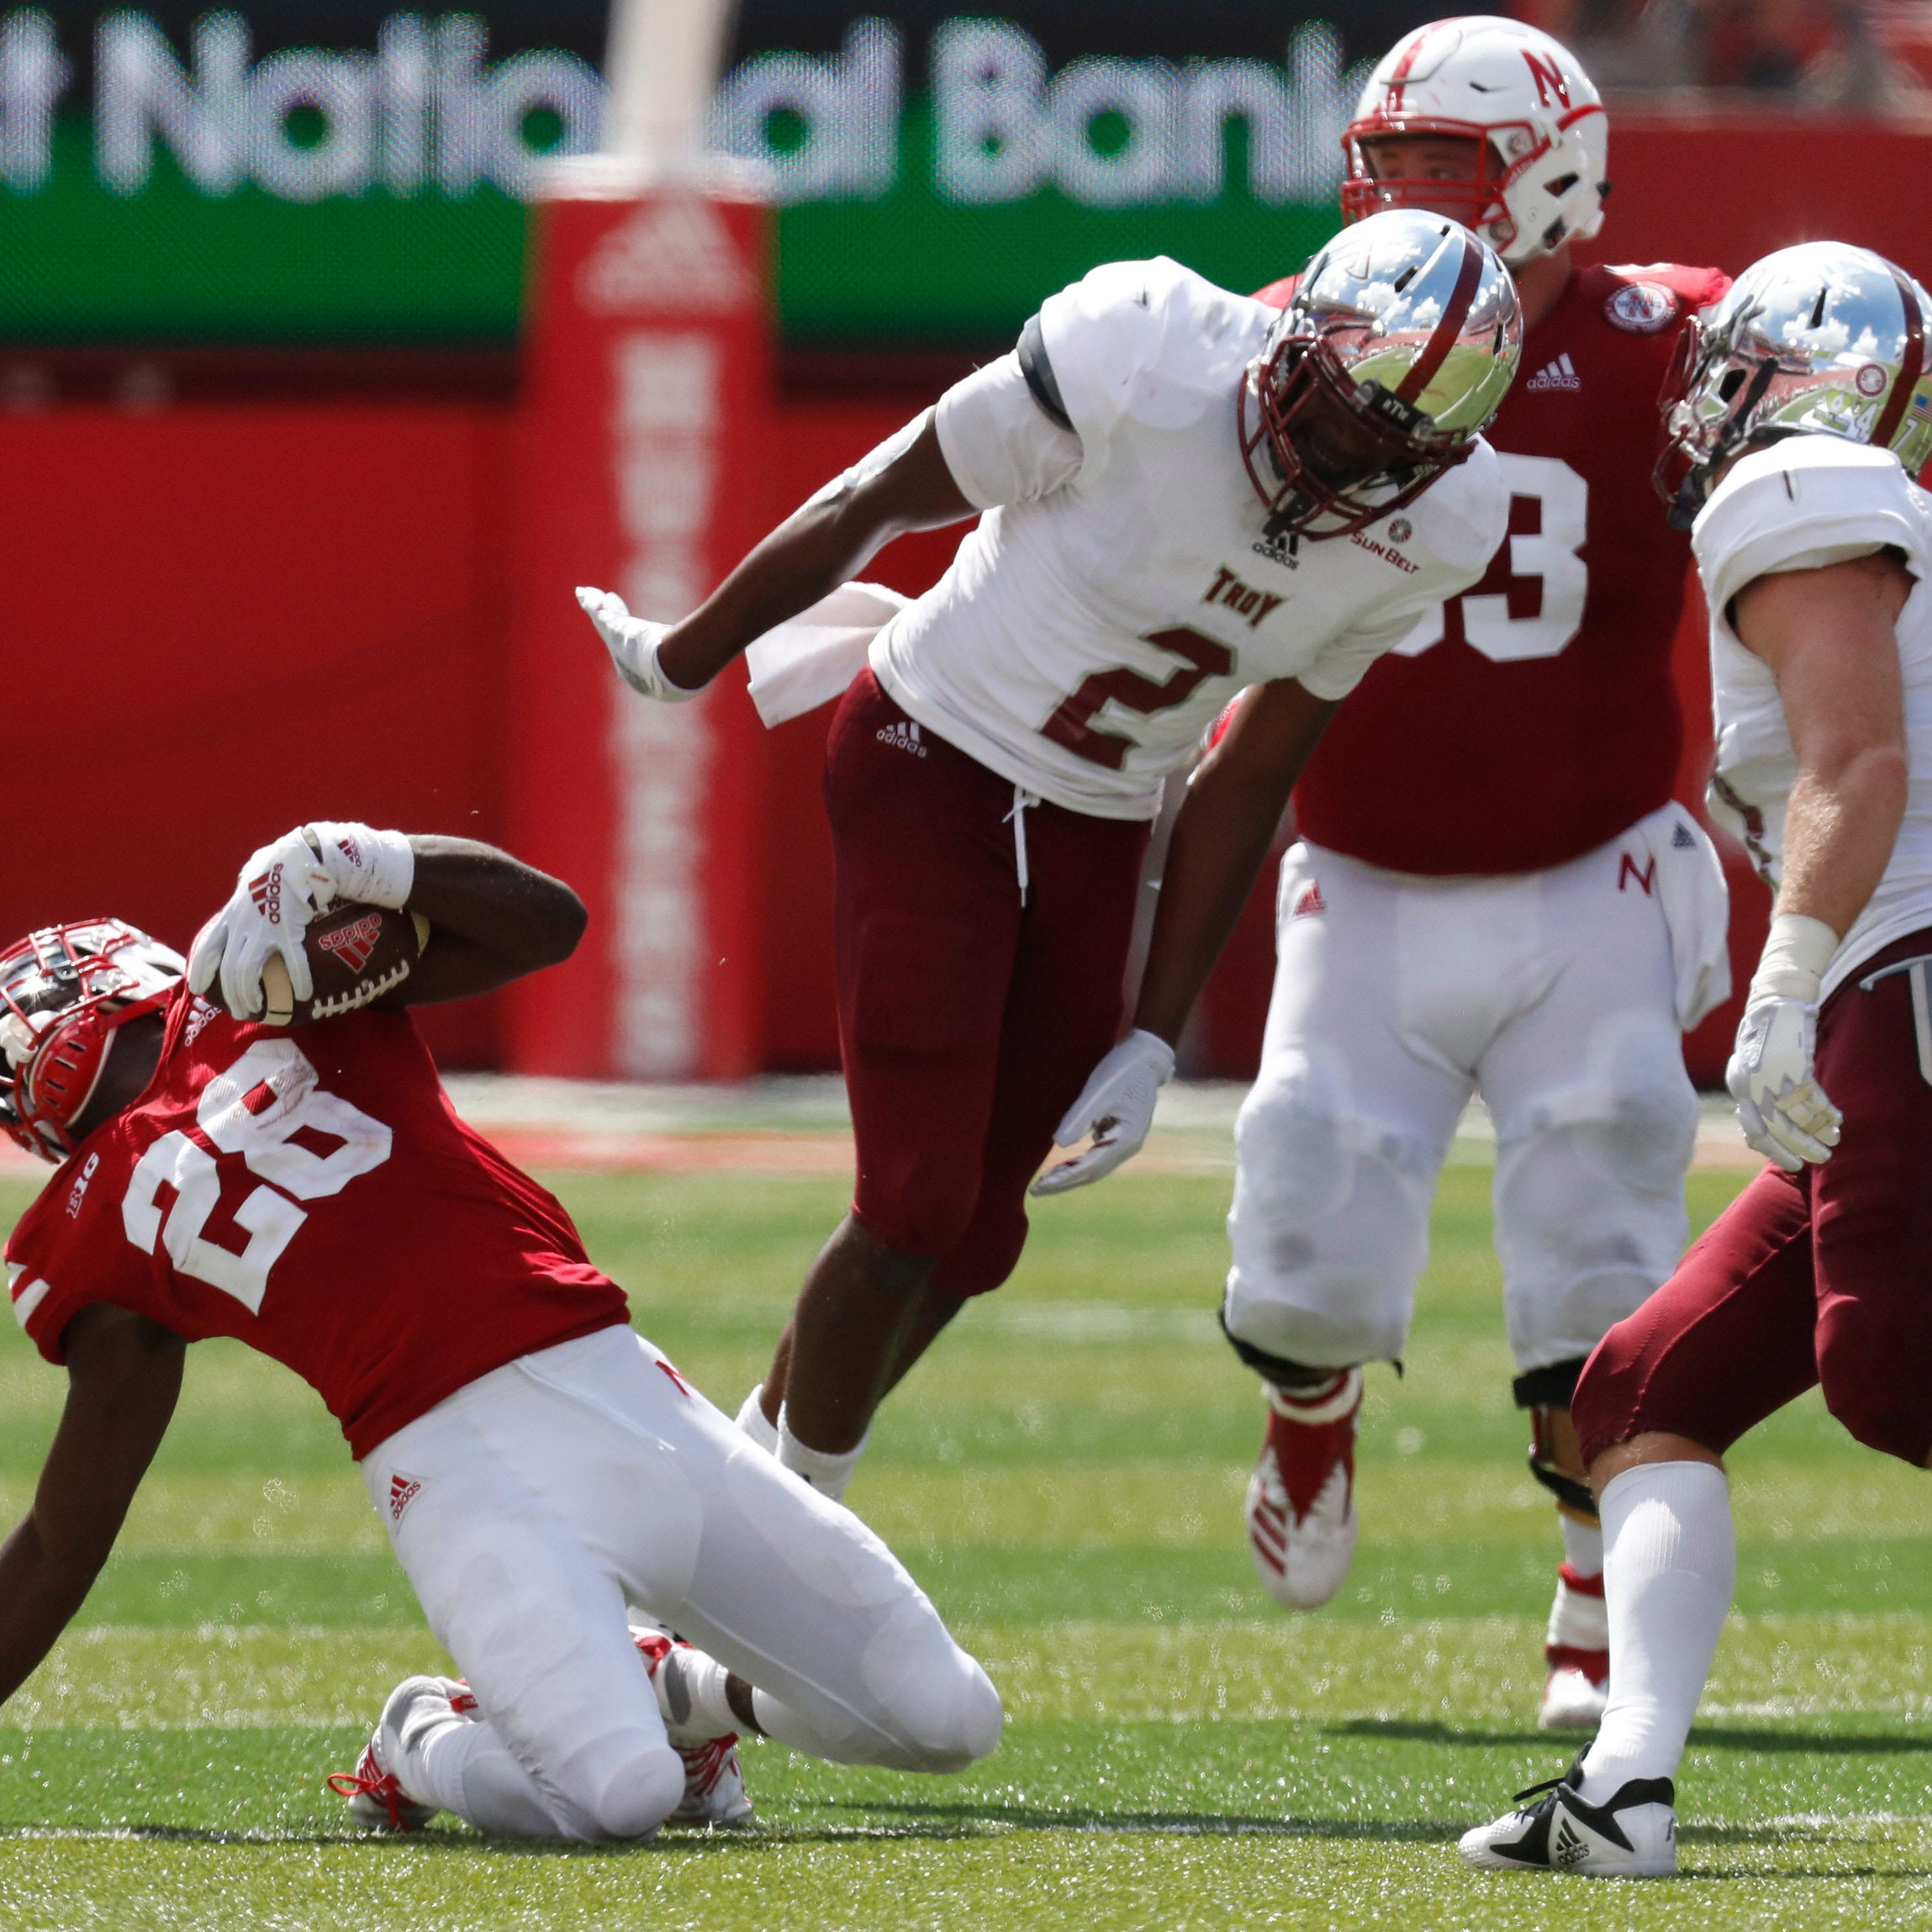 Colorado State football team adds transfer linebacker from Troy University